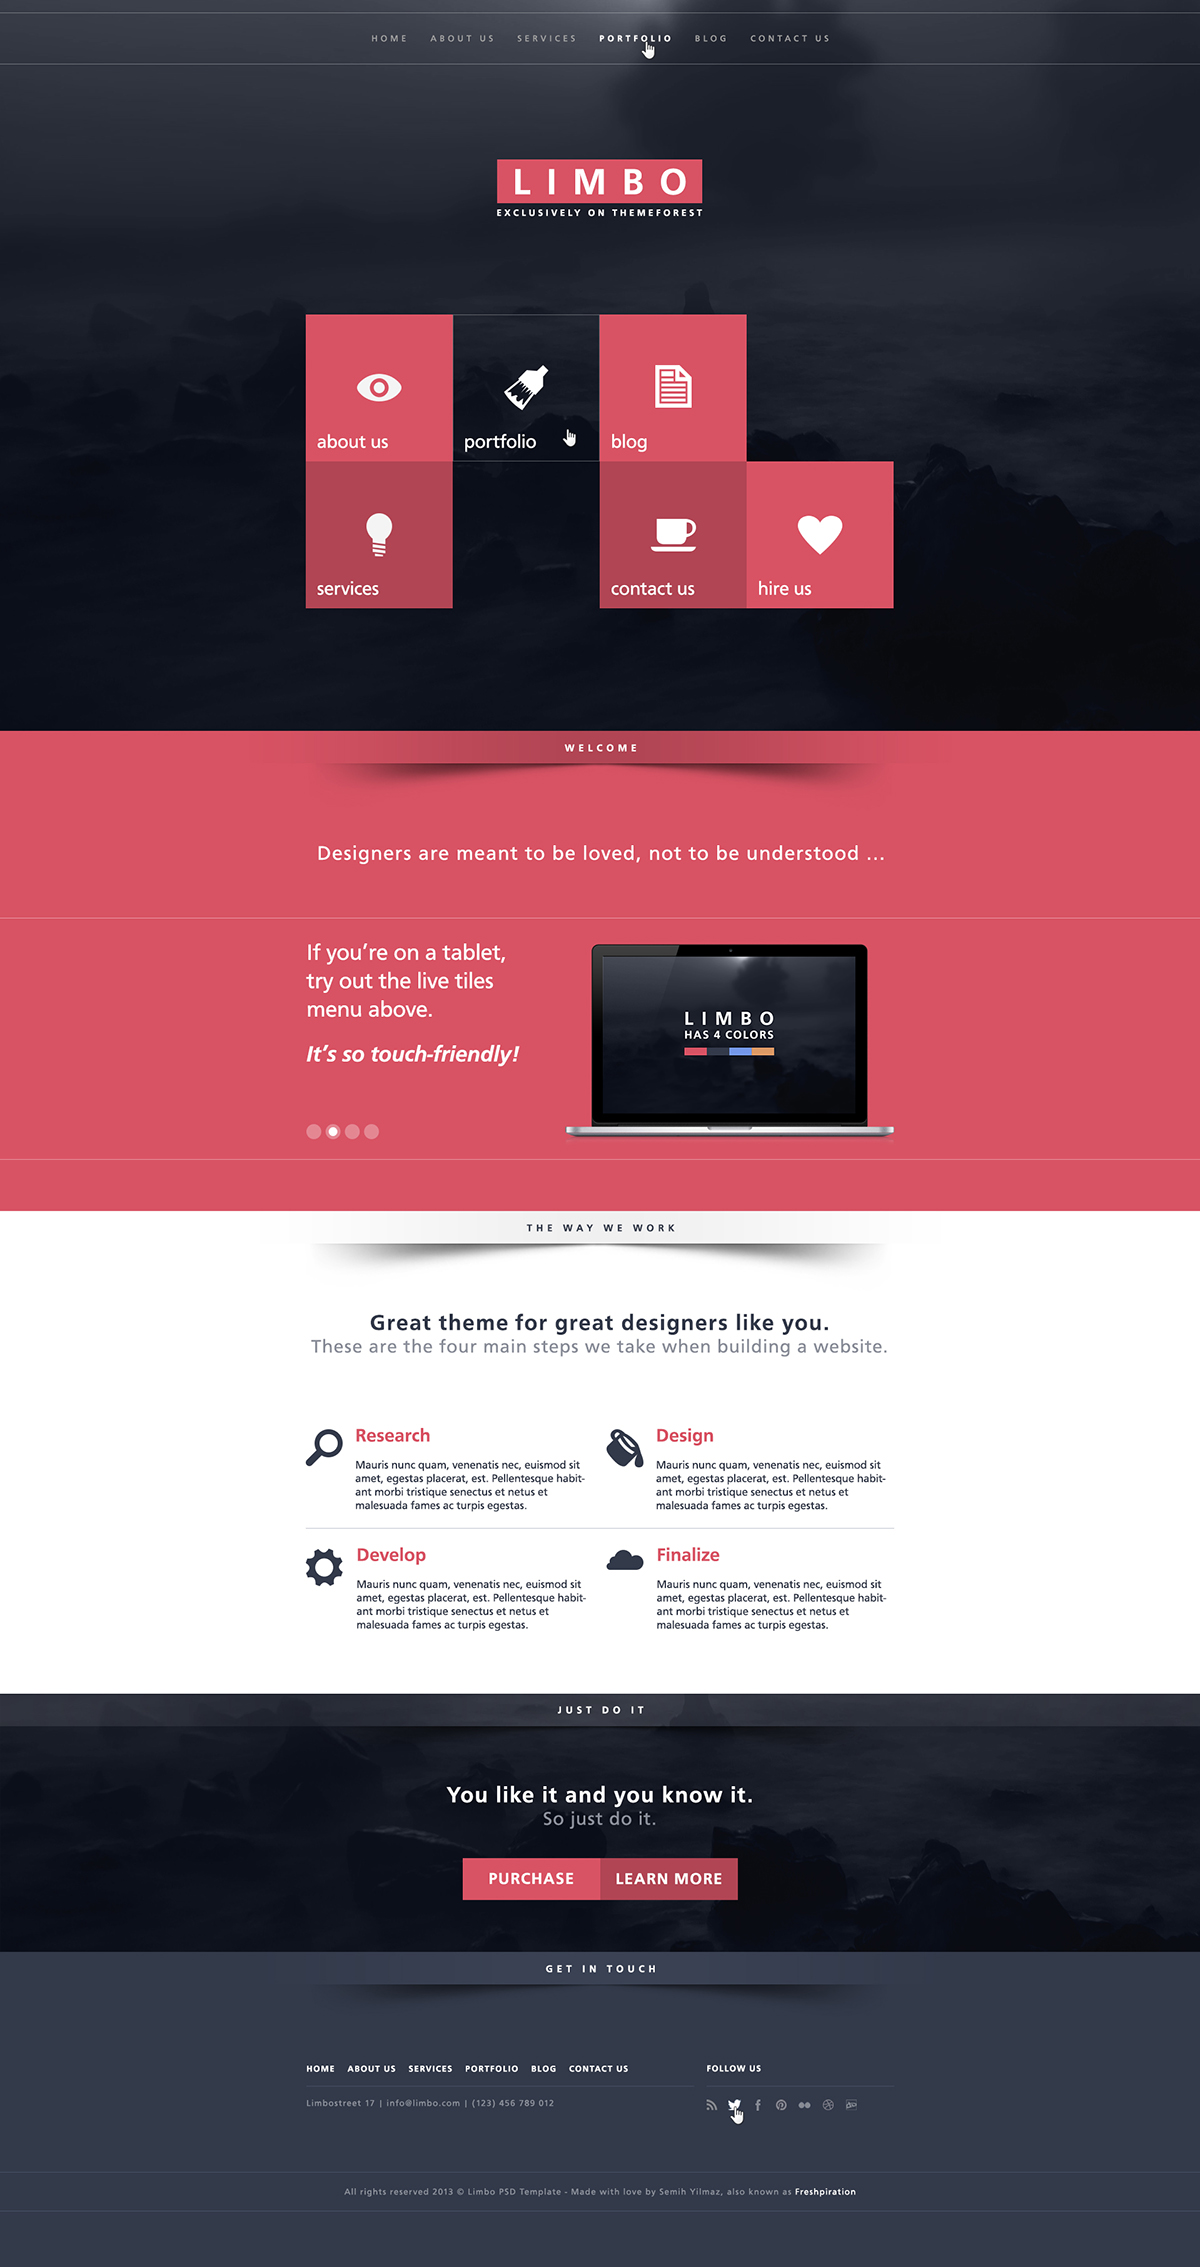 Limbo Web Design by SMHYLMZ